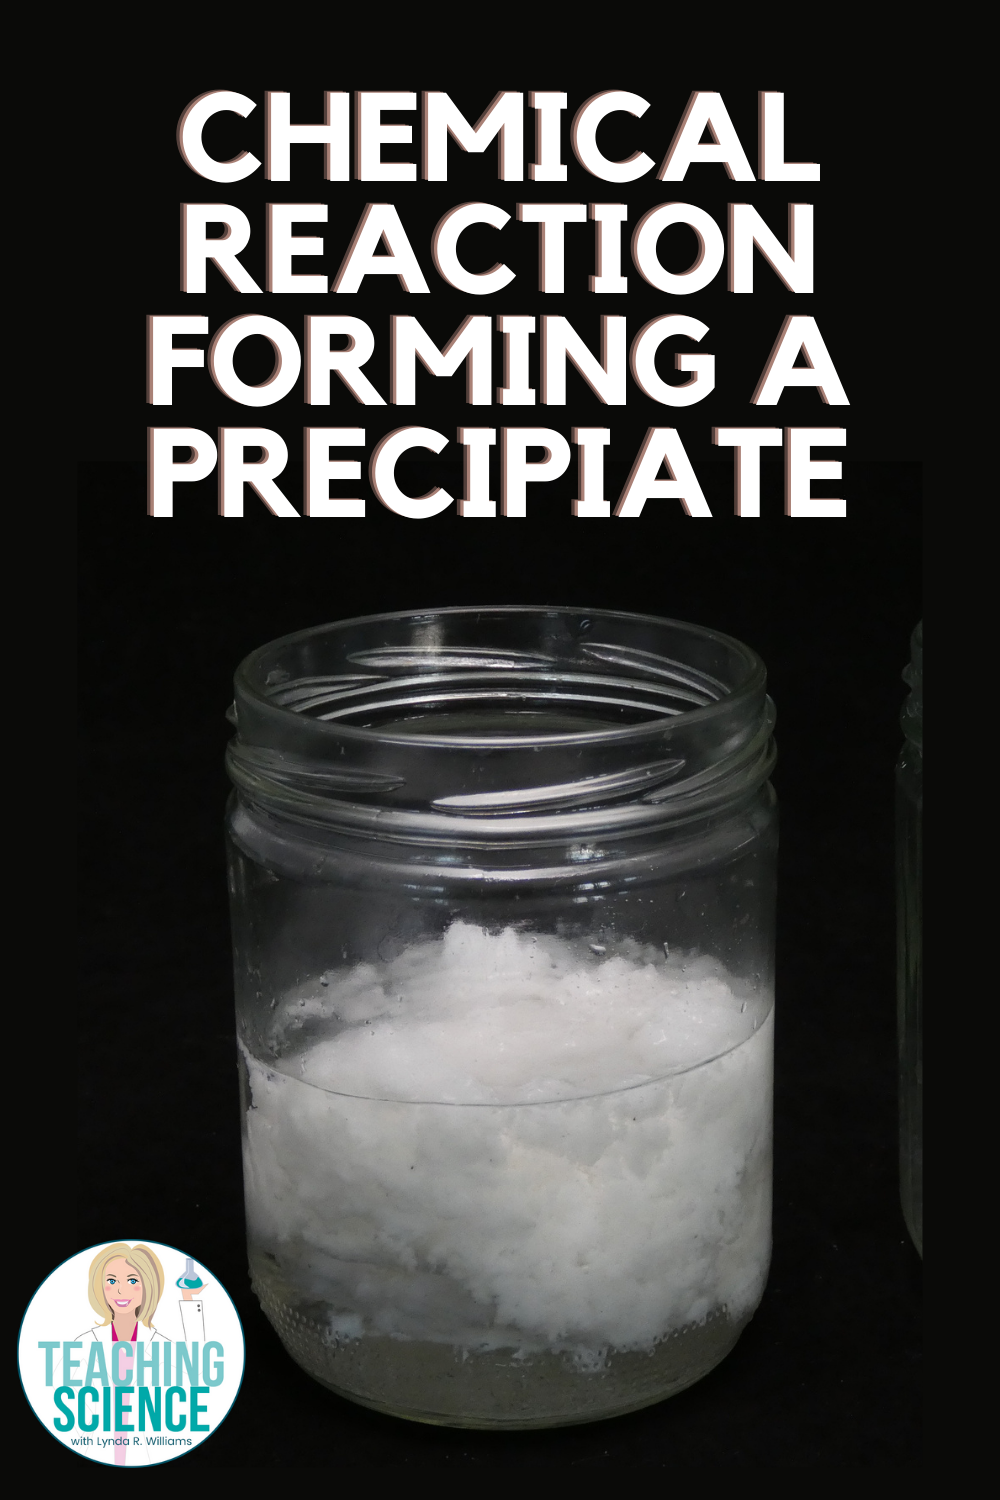 Signs of a Chemical Reaction-Precipitate